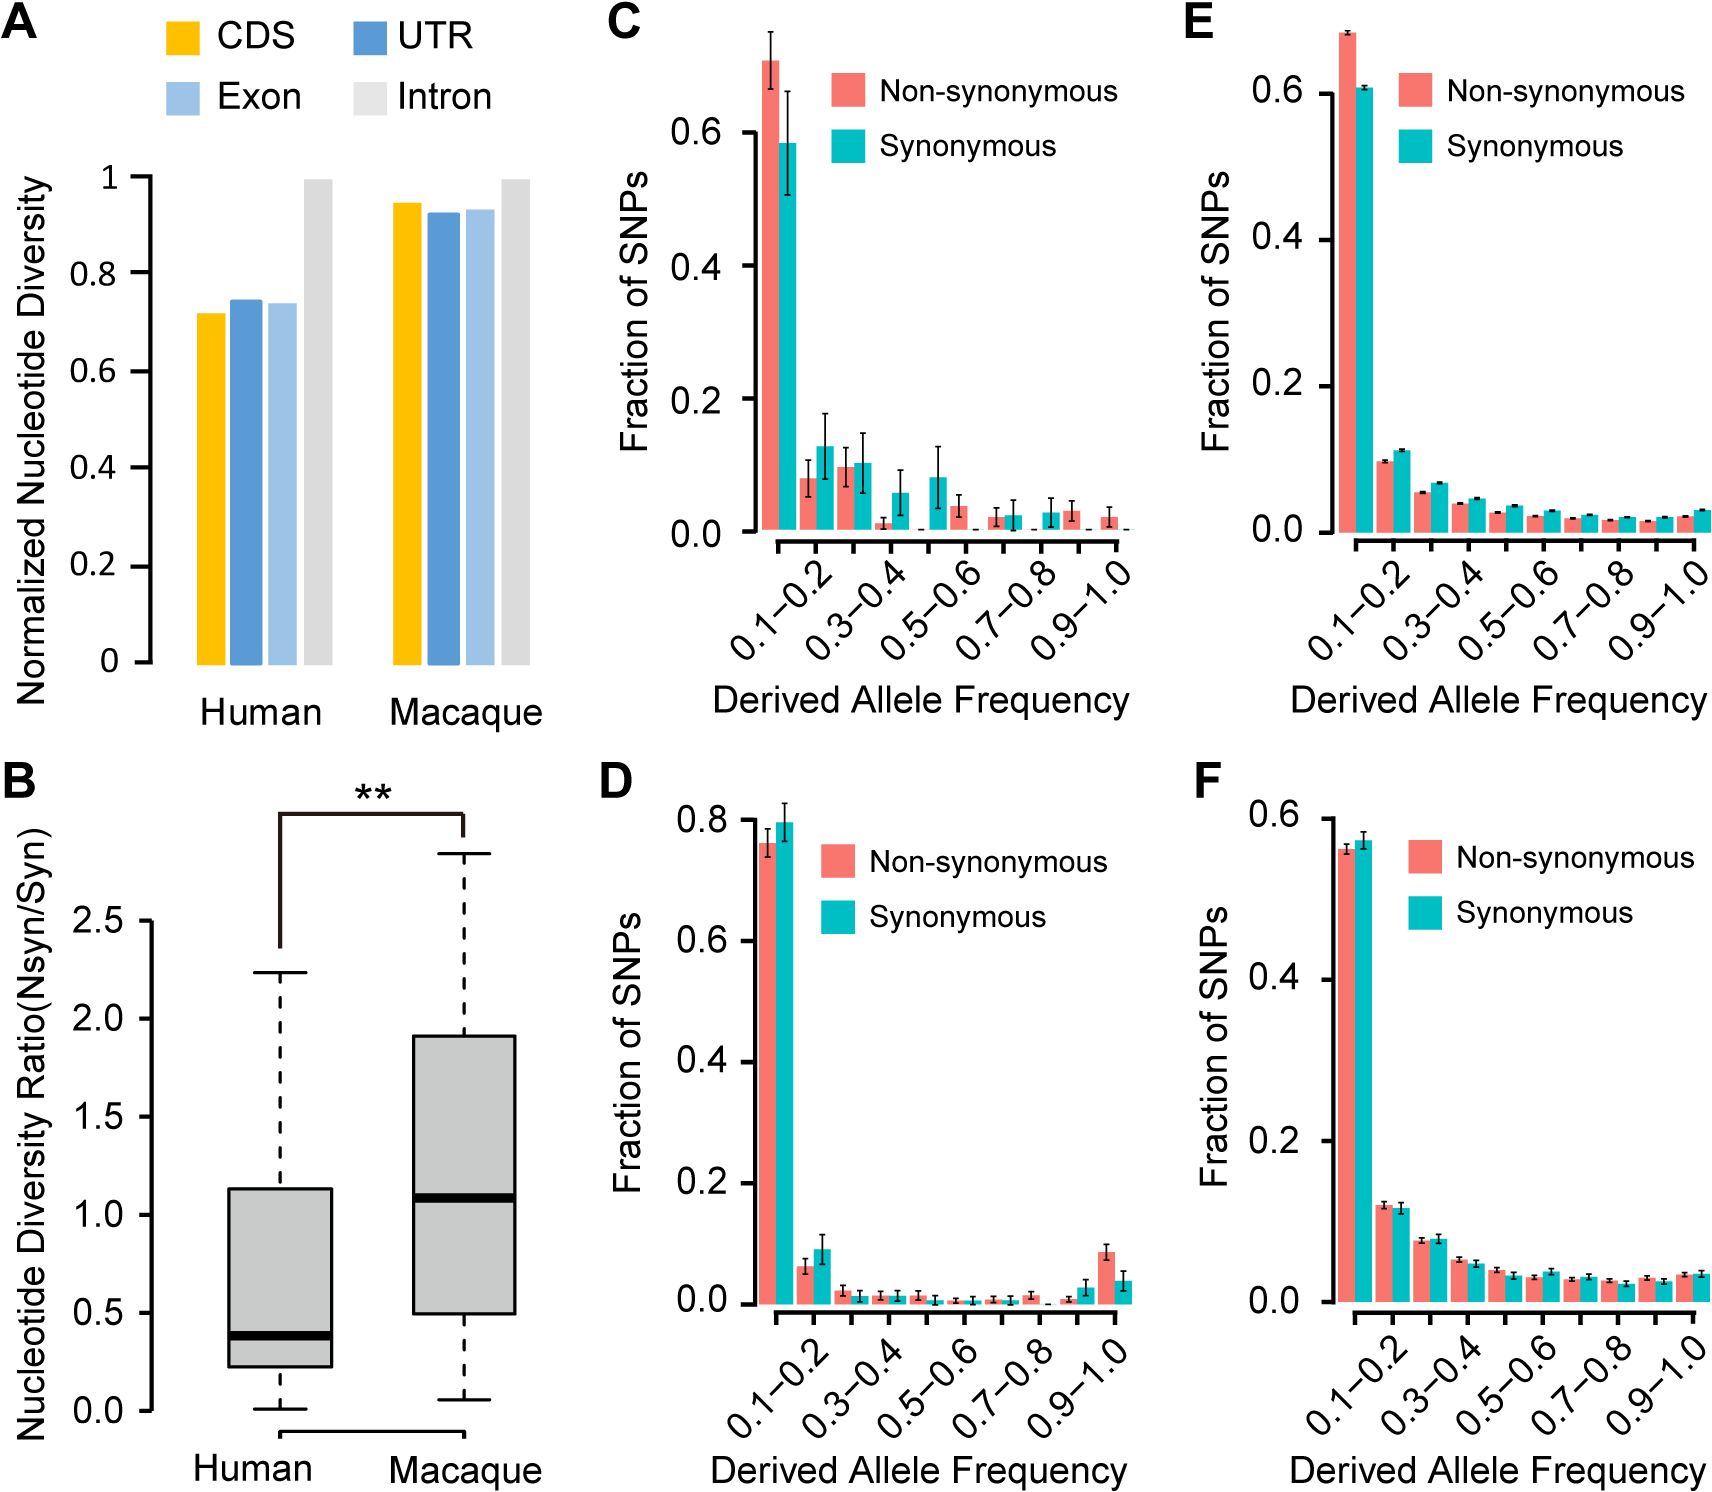 Evidence of purifying selection on the human <i>de novo</i> genes.